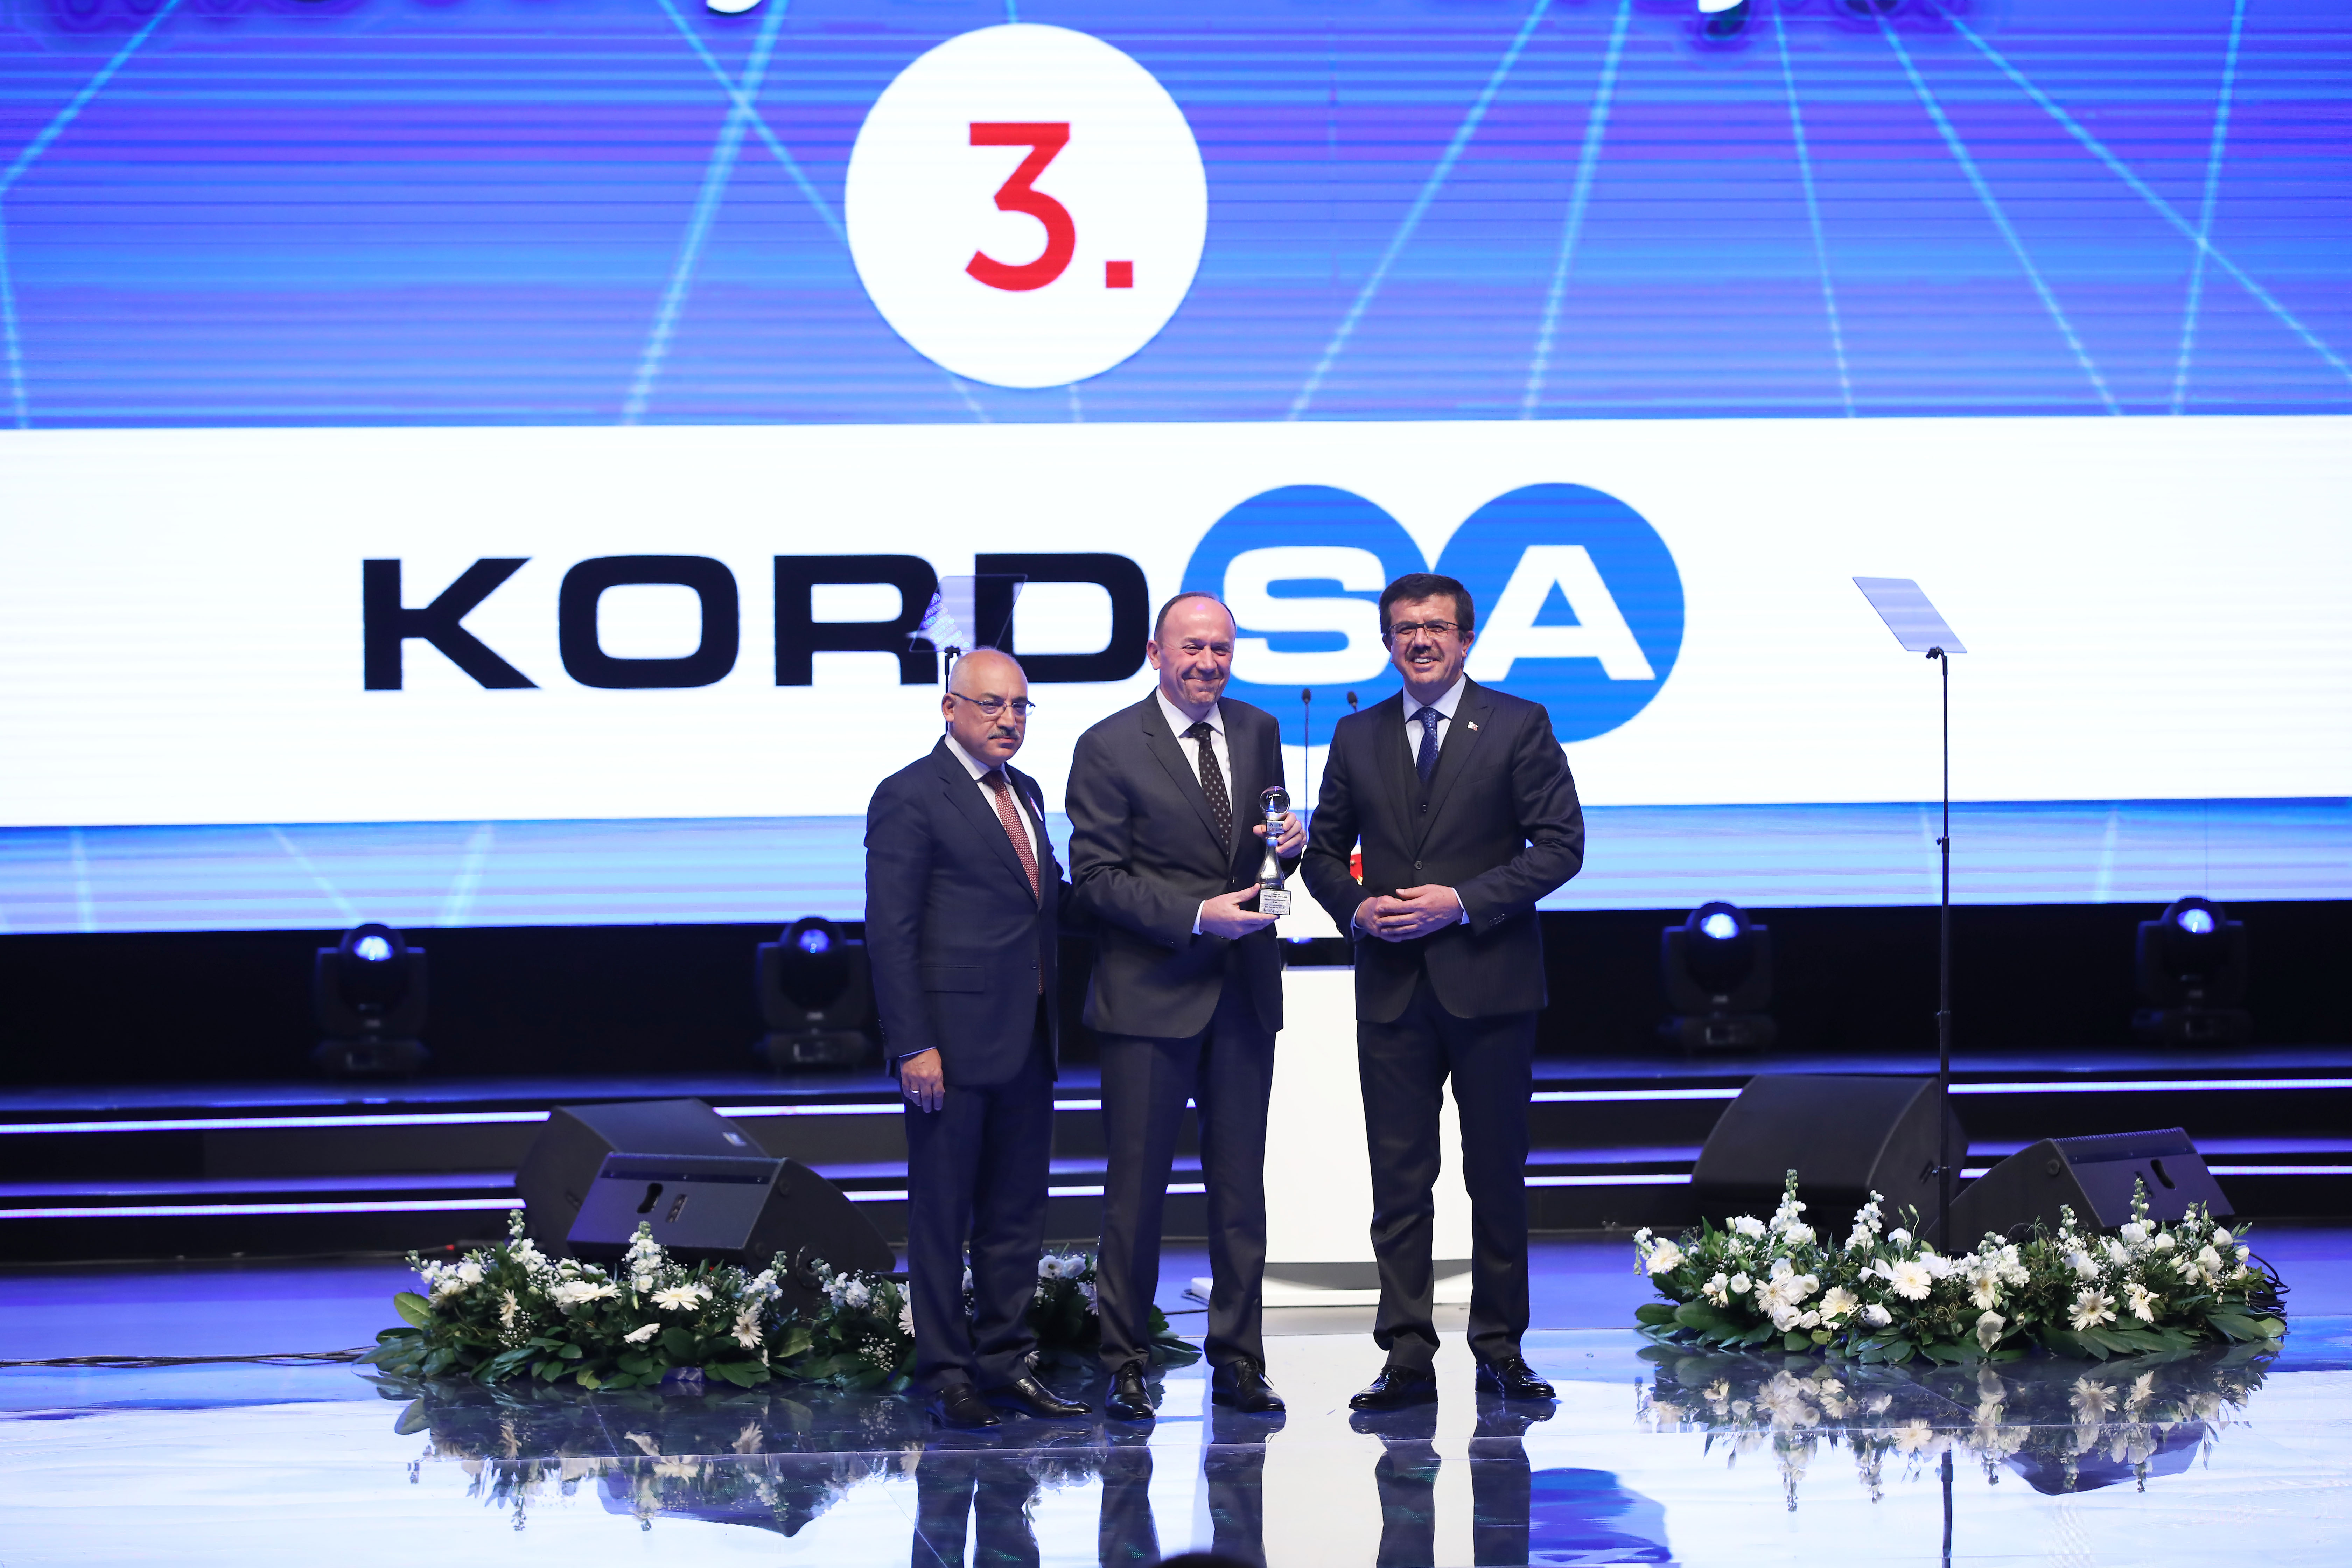 Kordsa wins the third prize in the Innovation Strategy category at Turkey Innovation and Entrepreneurship Week